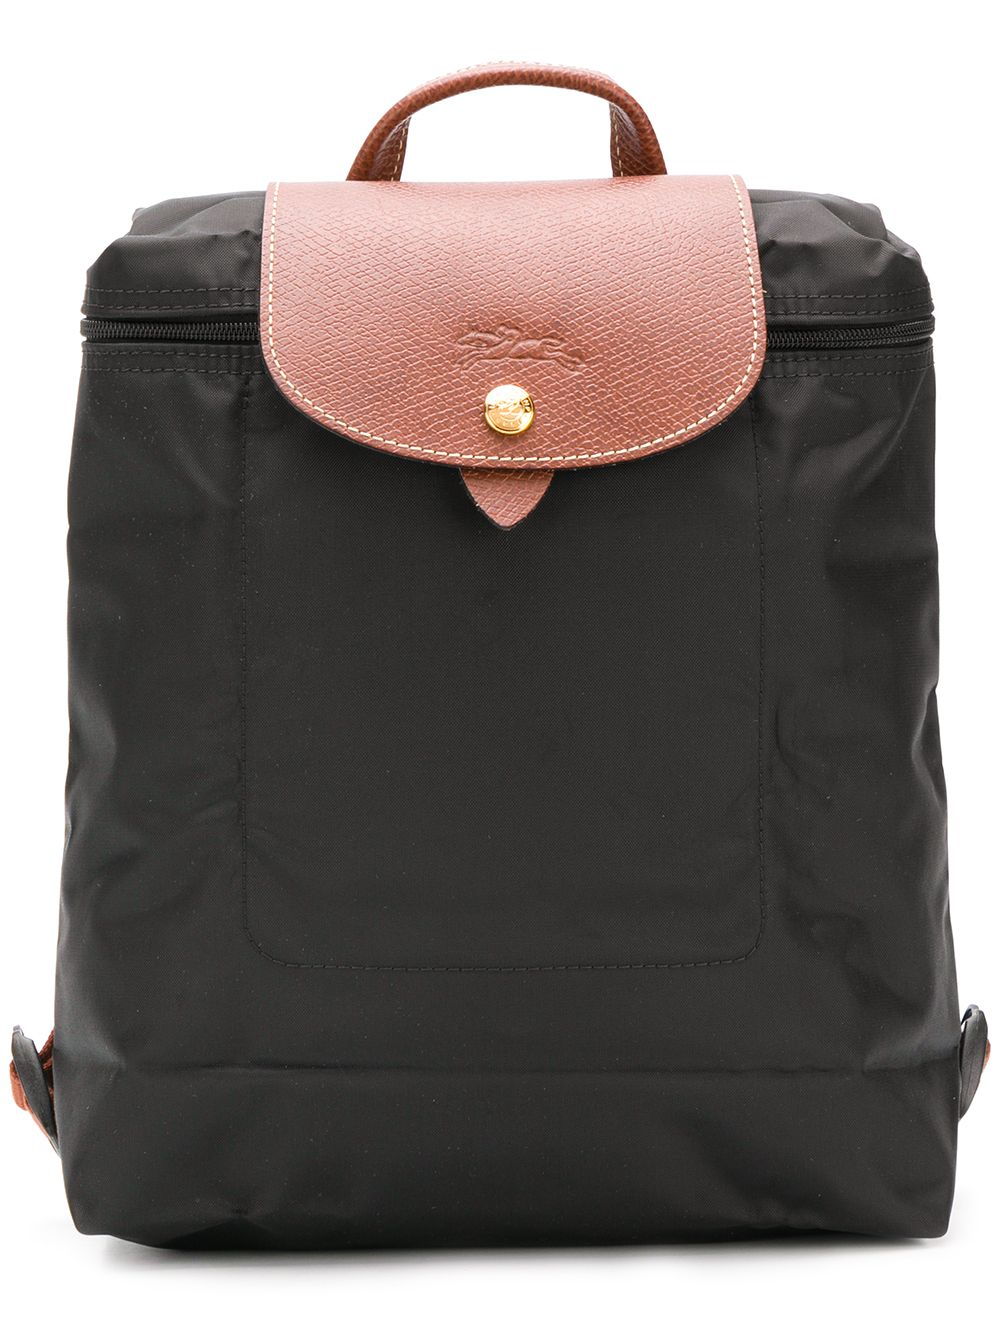 Longchamp Le Pliage backpack - Black von Longchamp